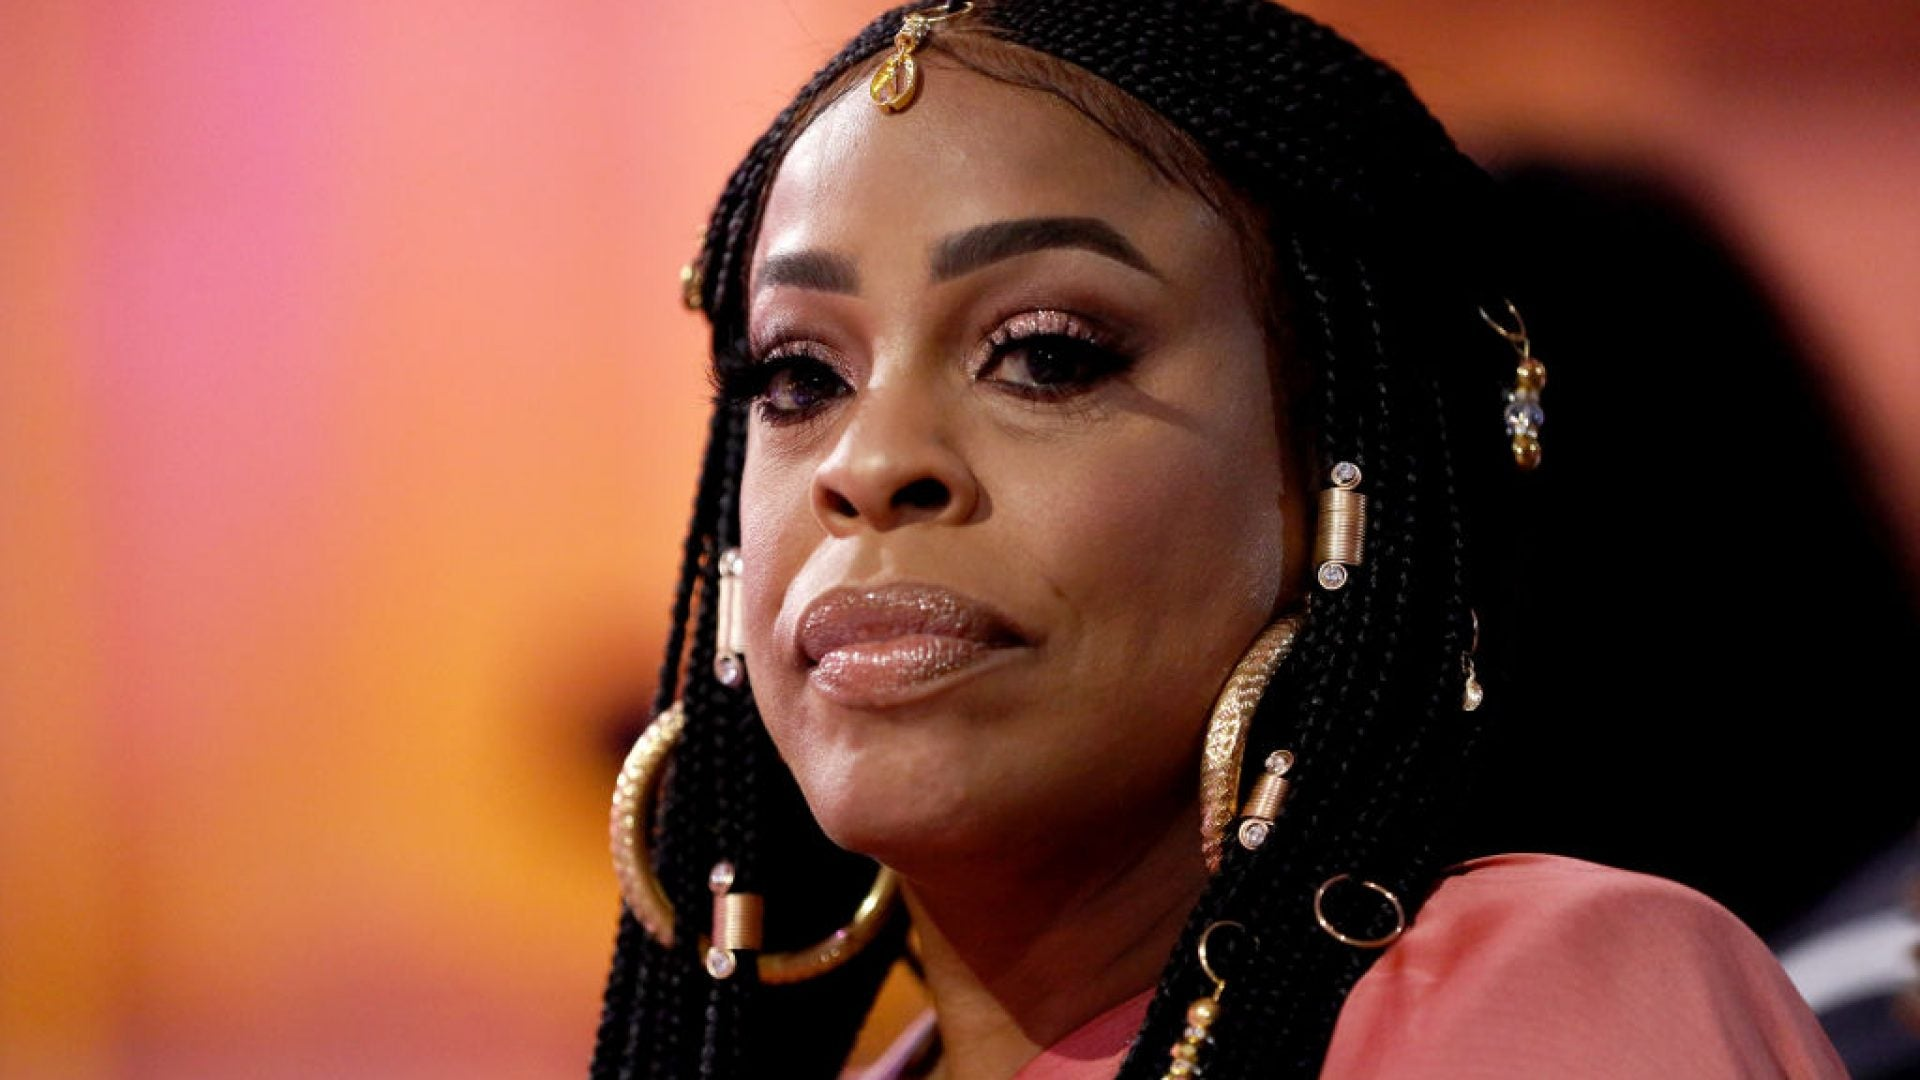 Niecy Nash Reveals Police 'Pulled A Taser' On Son During Traffic Stop